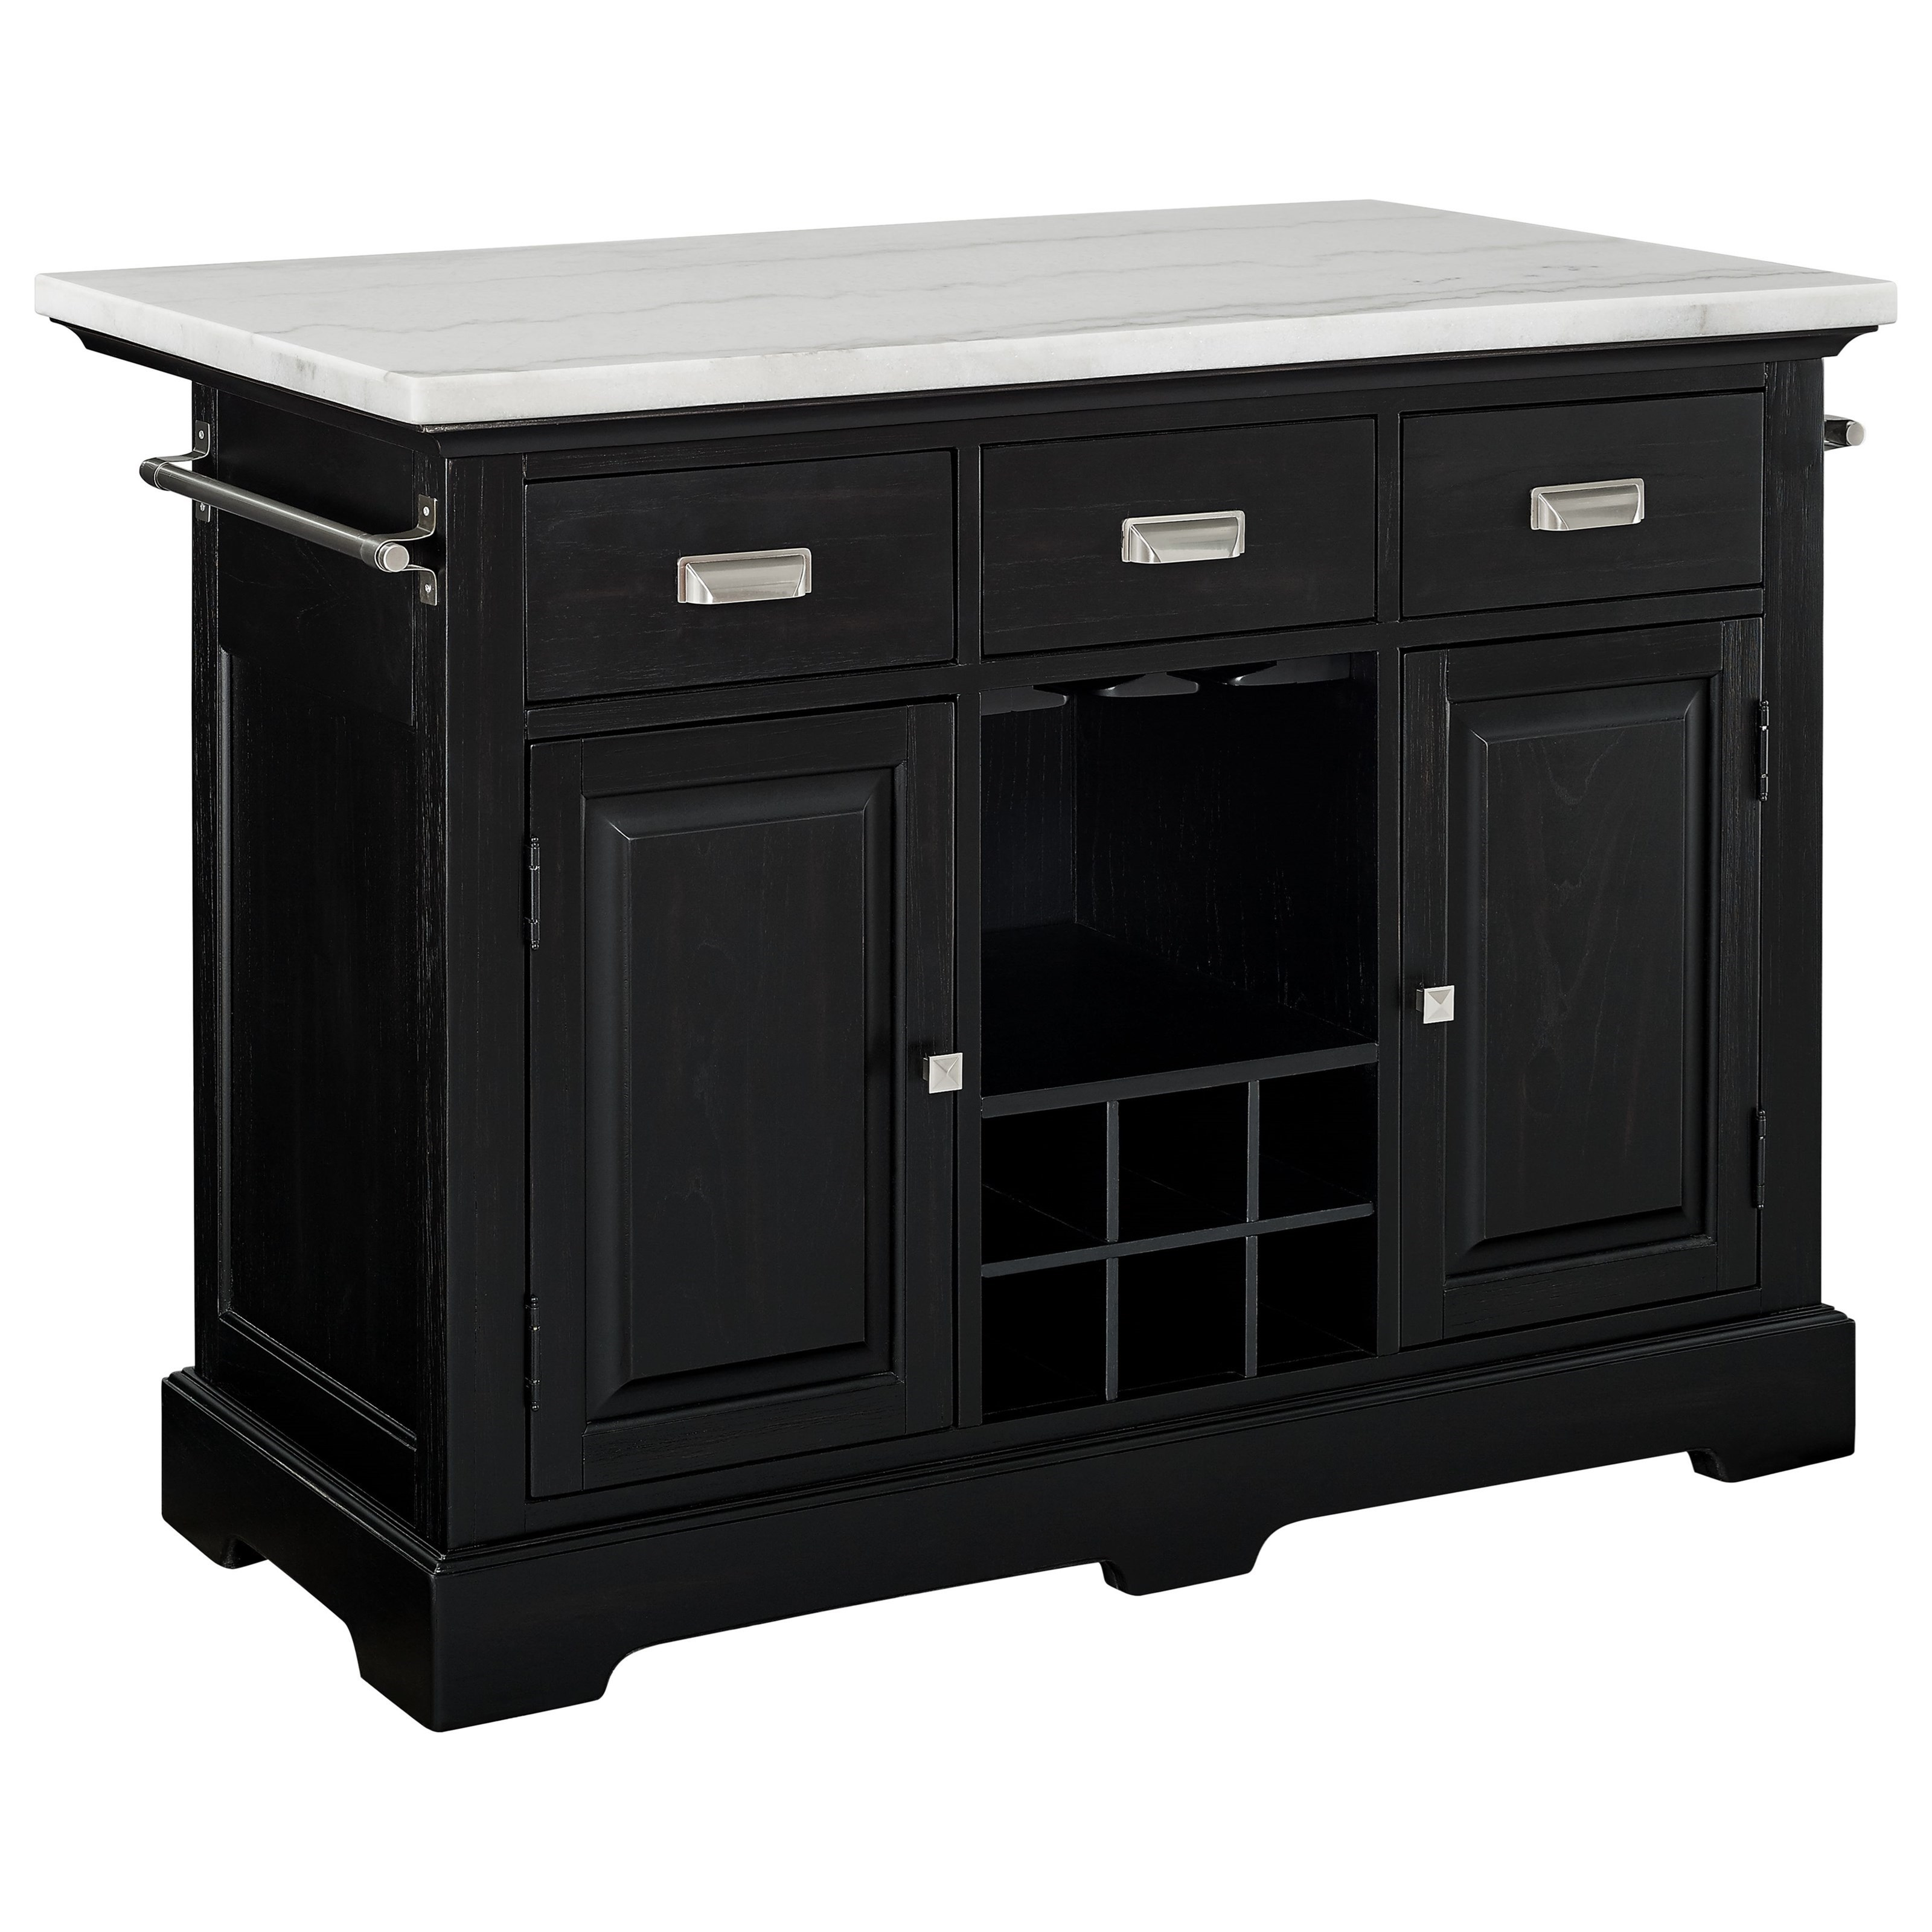 Aspen Kitchen Island by Star at EFO Furniture Outlet